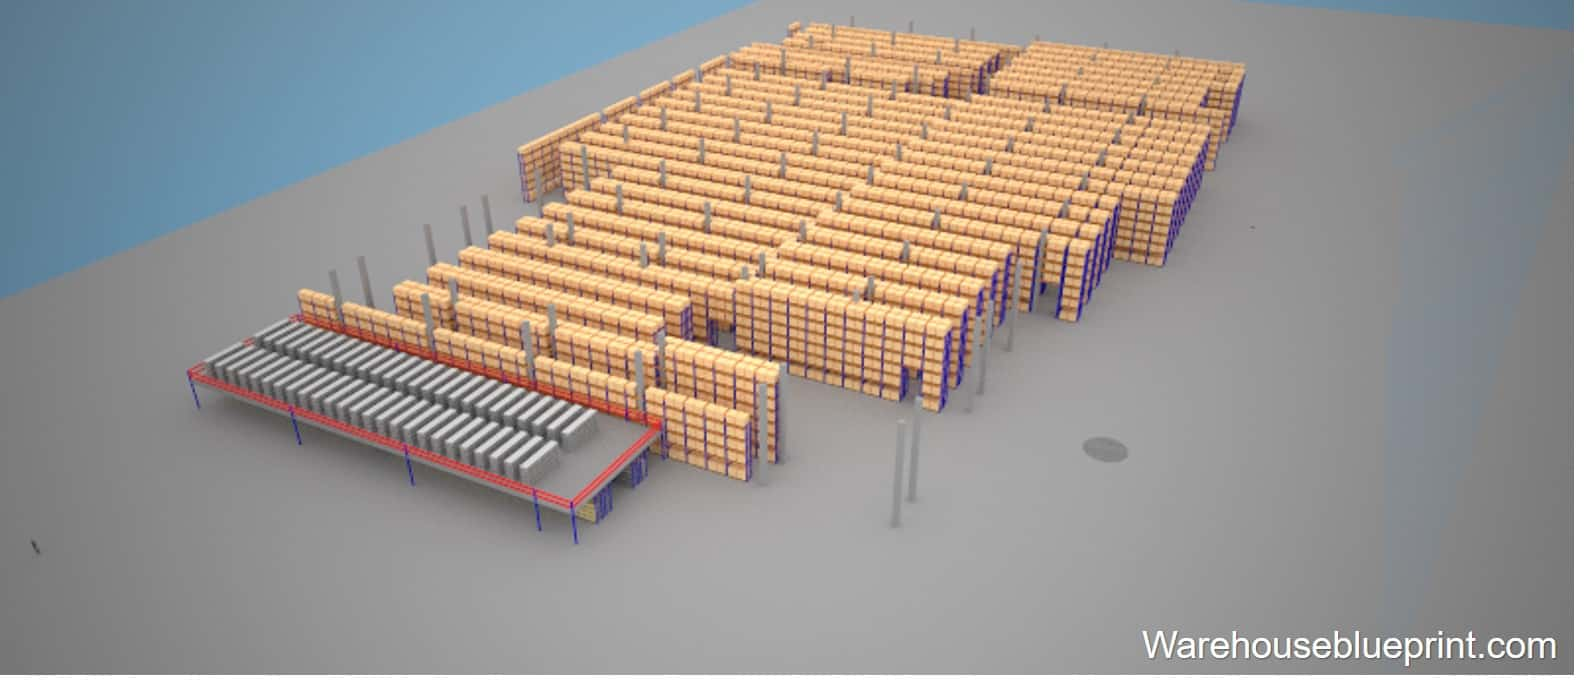 Warehouse Layout 16 - rendered